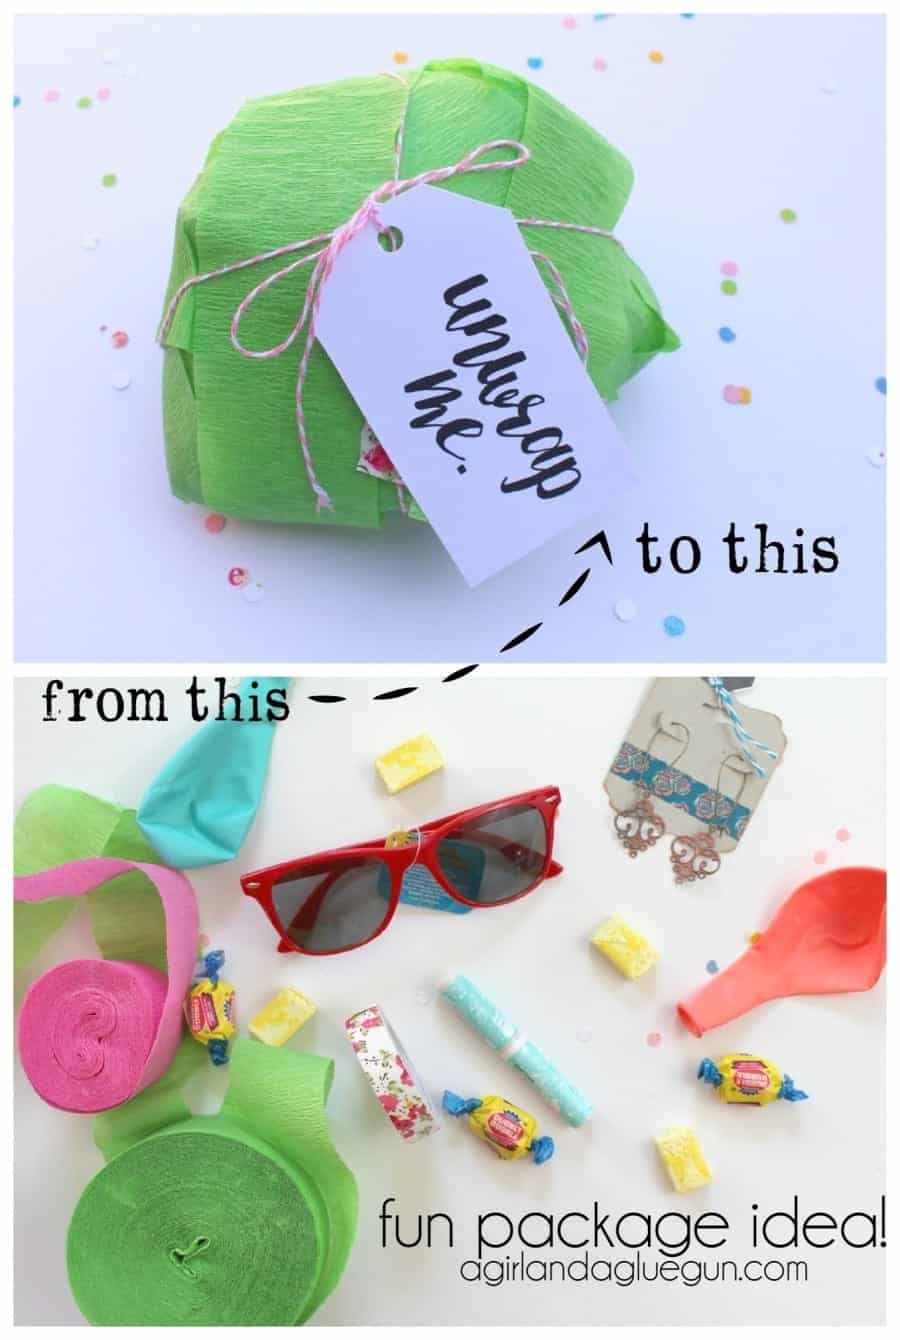 fun-way-to-send-happy-mail-crepe-paper-ball-wrapped-presents-900x1340